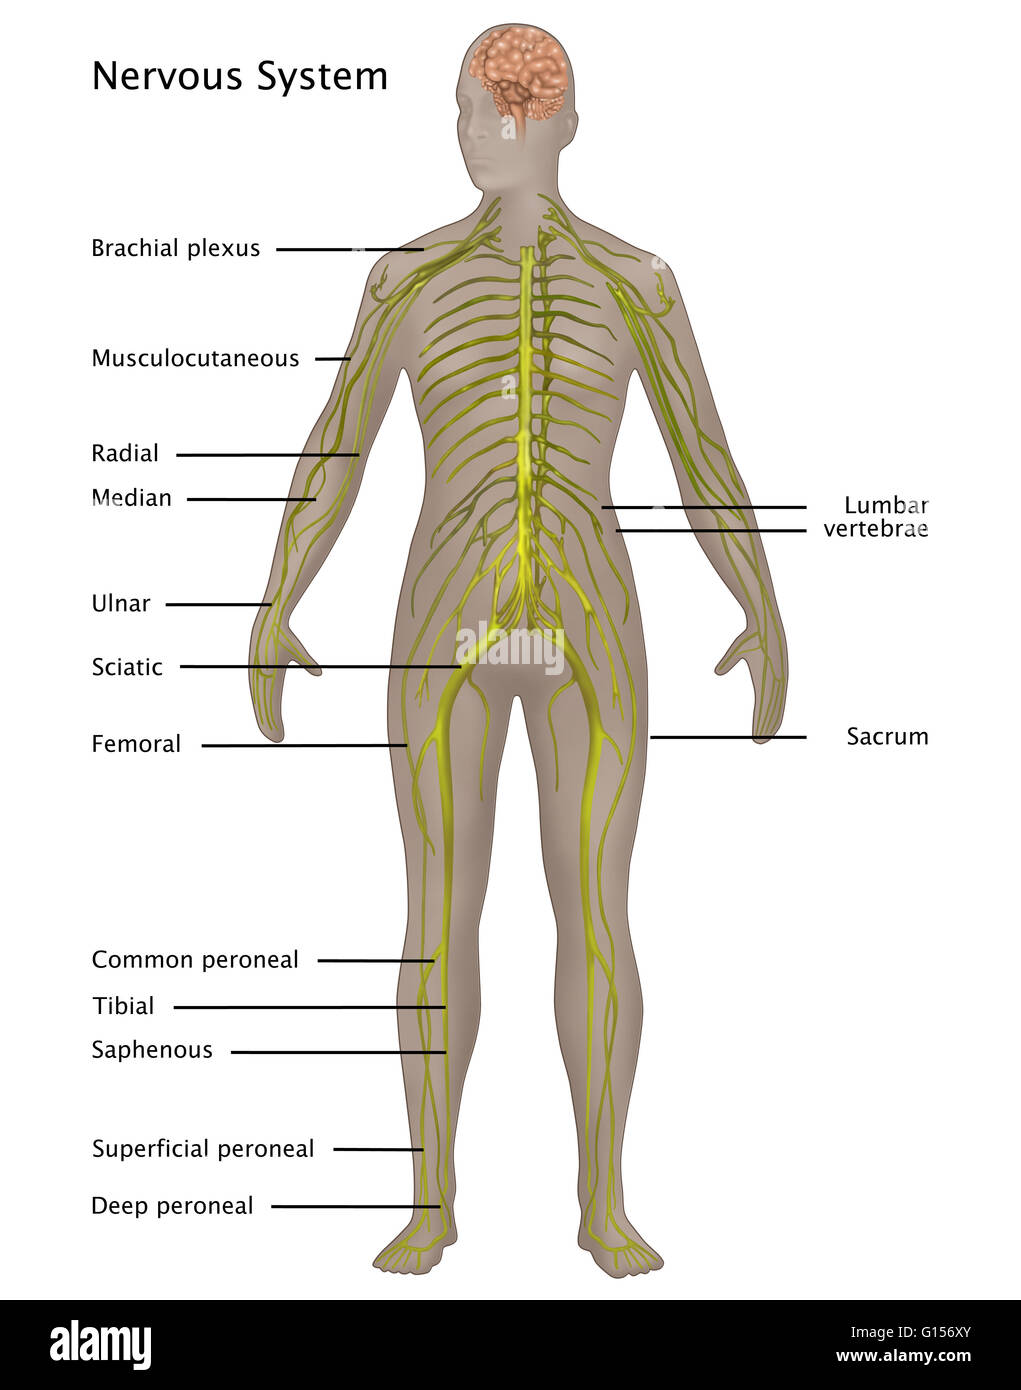 Hip Anatomy Diagram Human Nervous System - Trusted Wiring Diagrams •